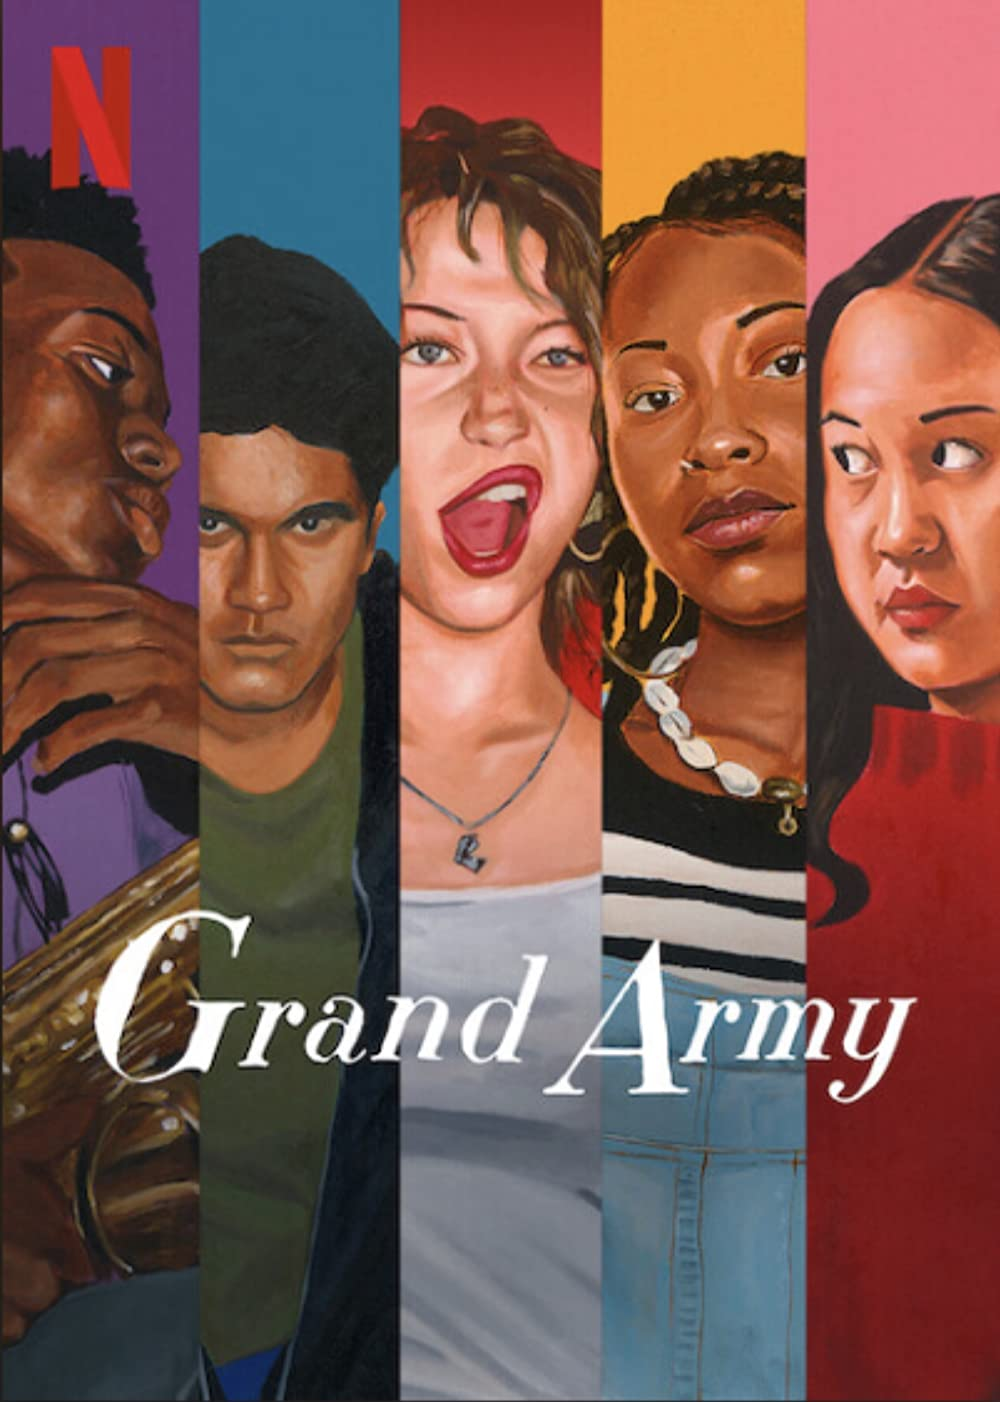 Grand Army poster